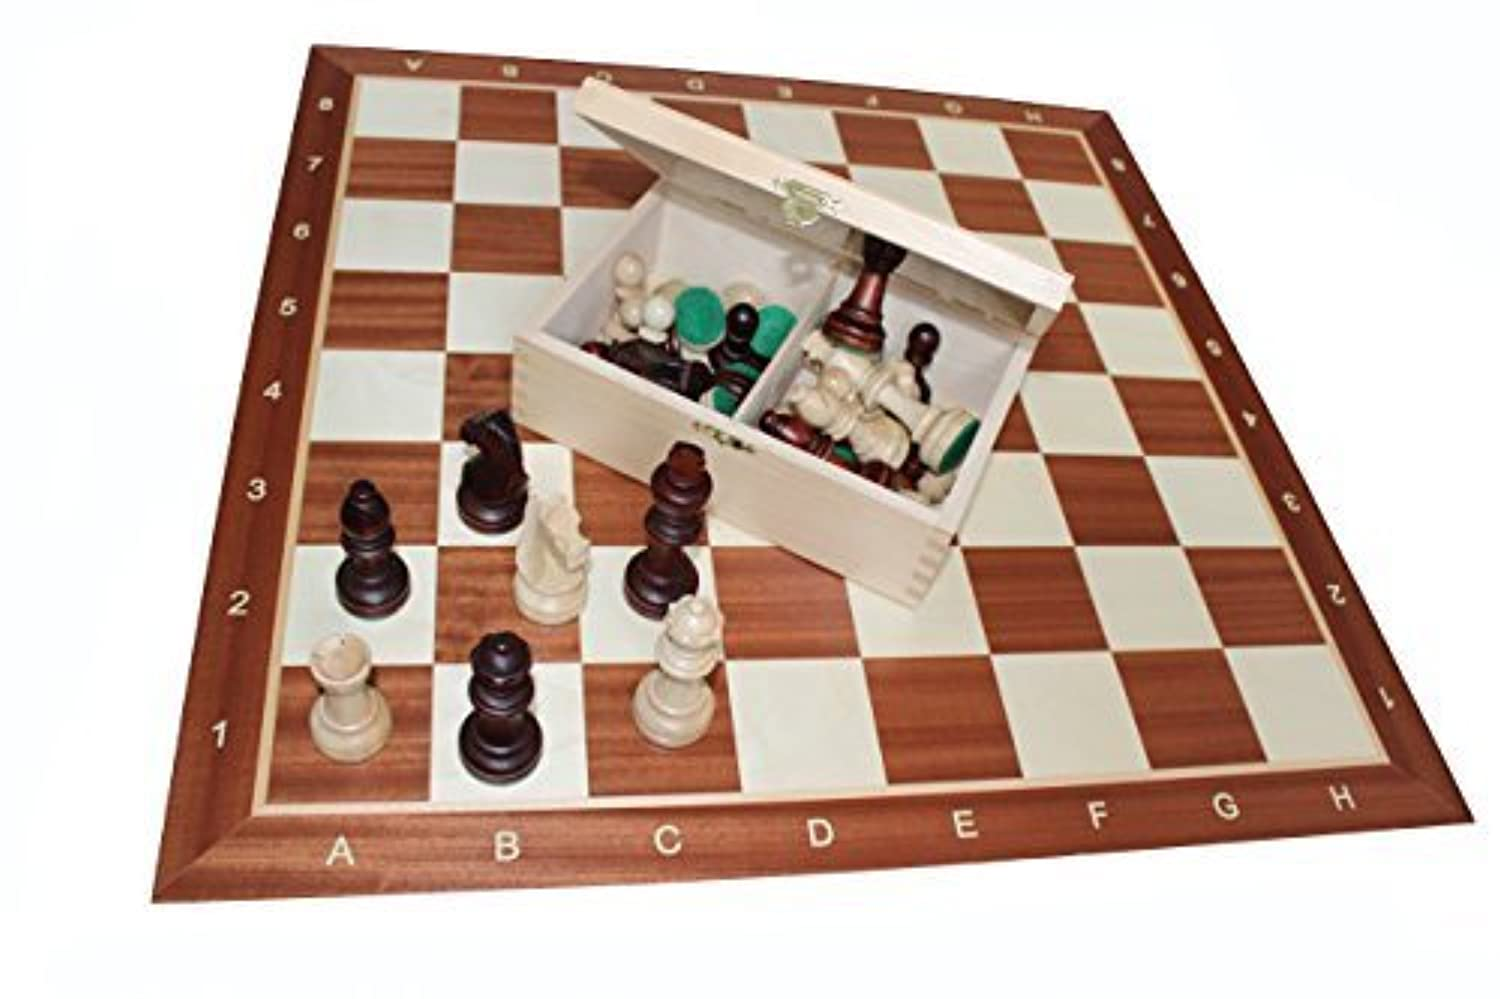 STAUNTON NO 5 TOURNAMENT PROFESSIONAL CHESS SET 48x48 cm INLAID BOARD by Woodeyland [並行輸入品]